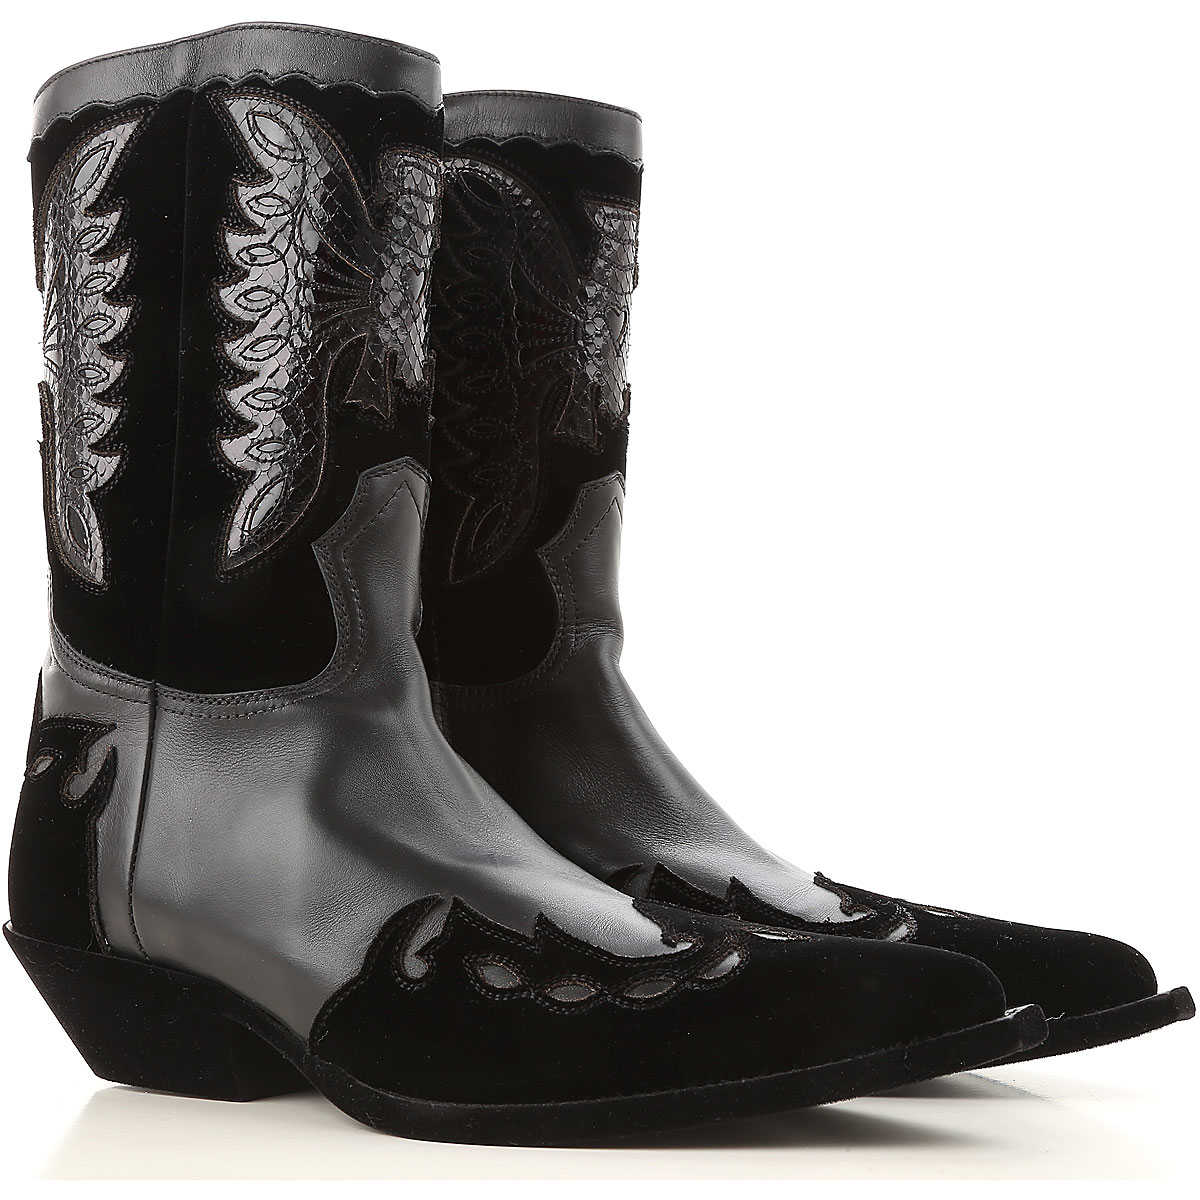 Givenchy Boots for Men Booties On Sale in Outlet SE - GOOFASH